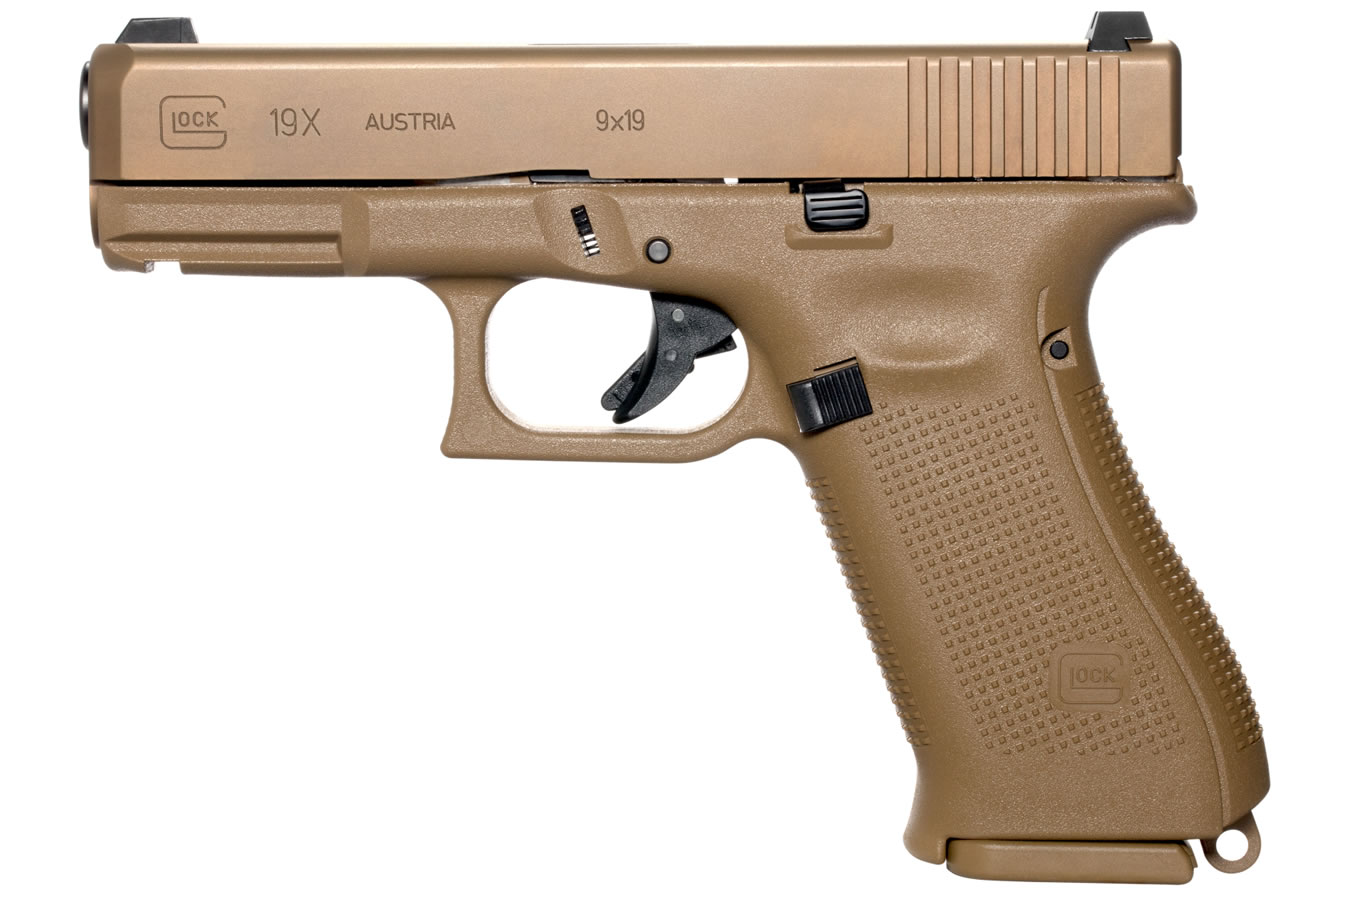 19X 9MM FULL-SIZE FDE PISTOL (LE)